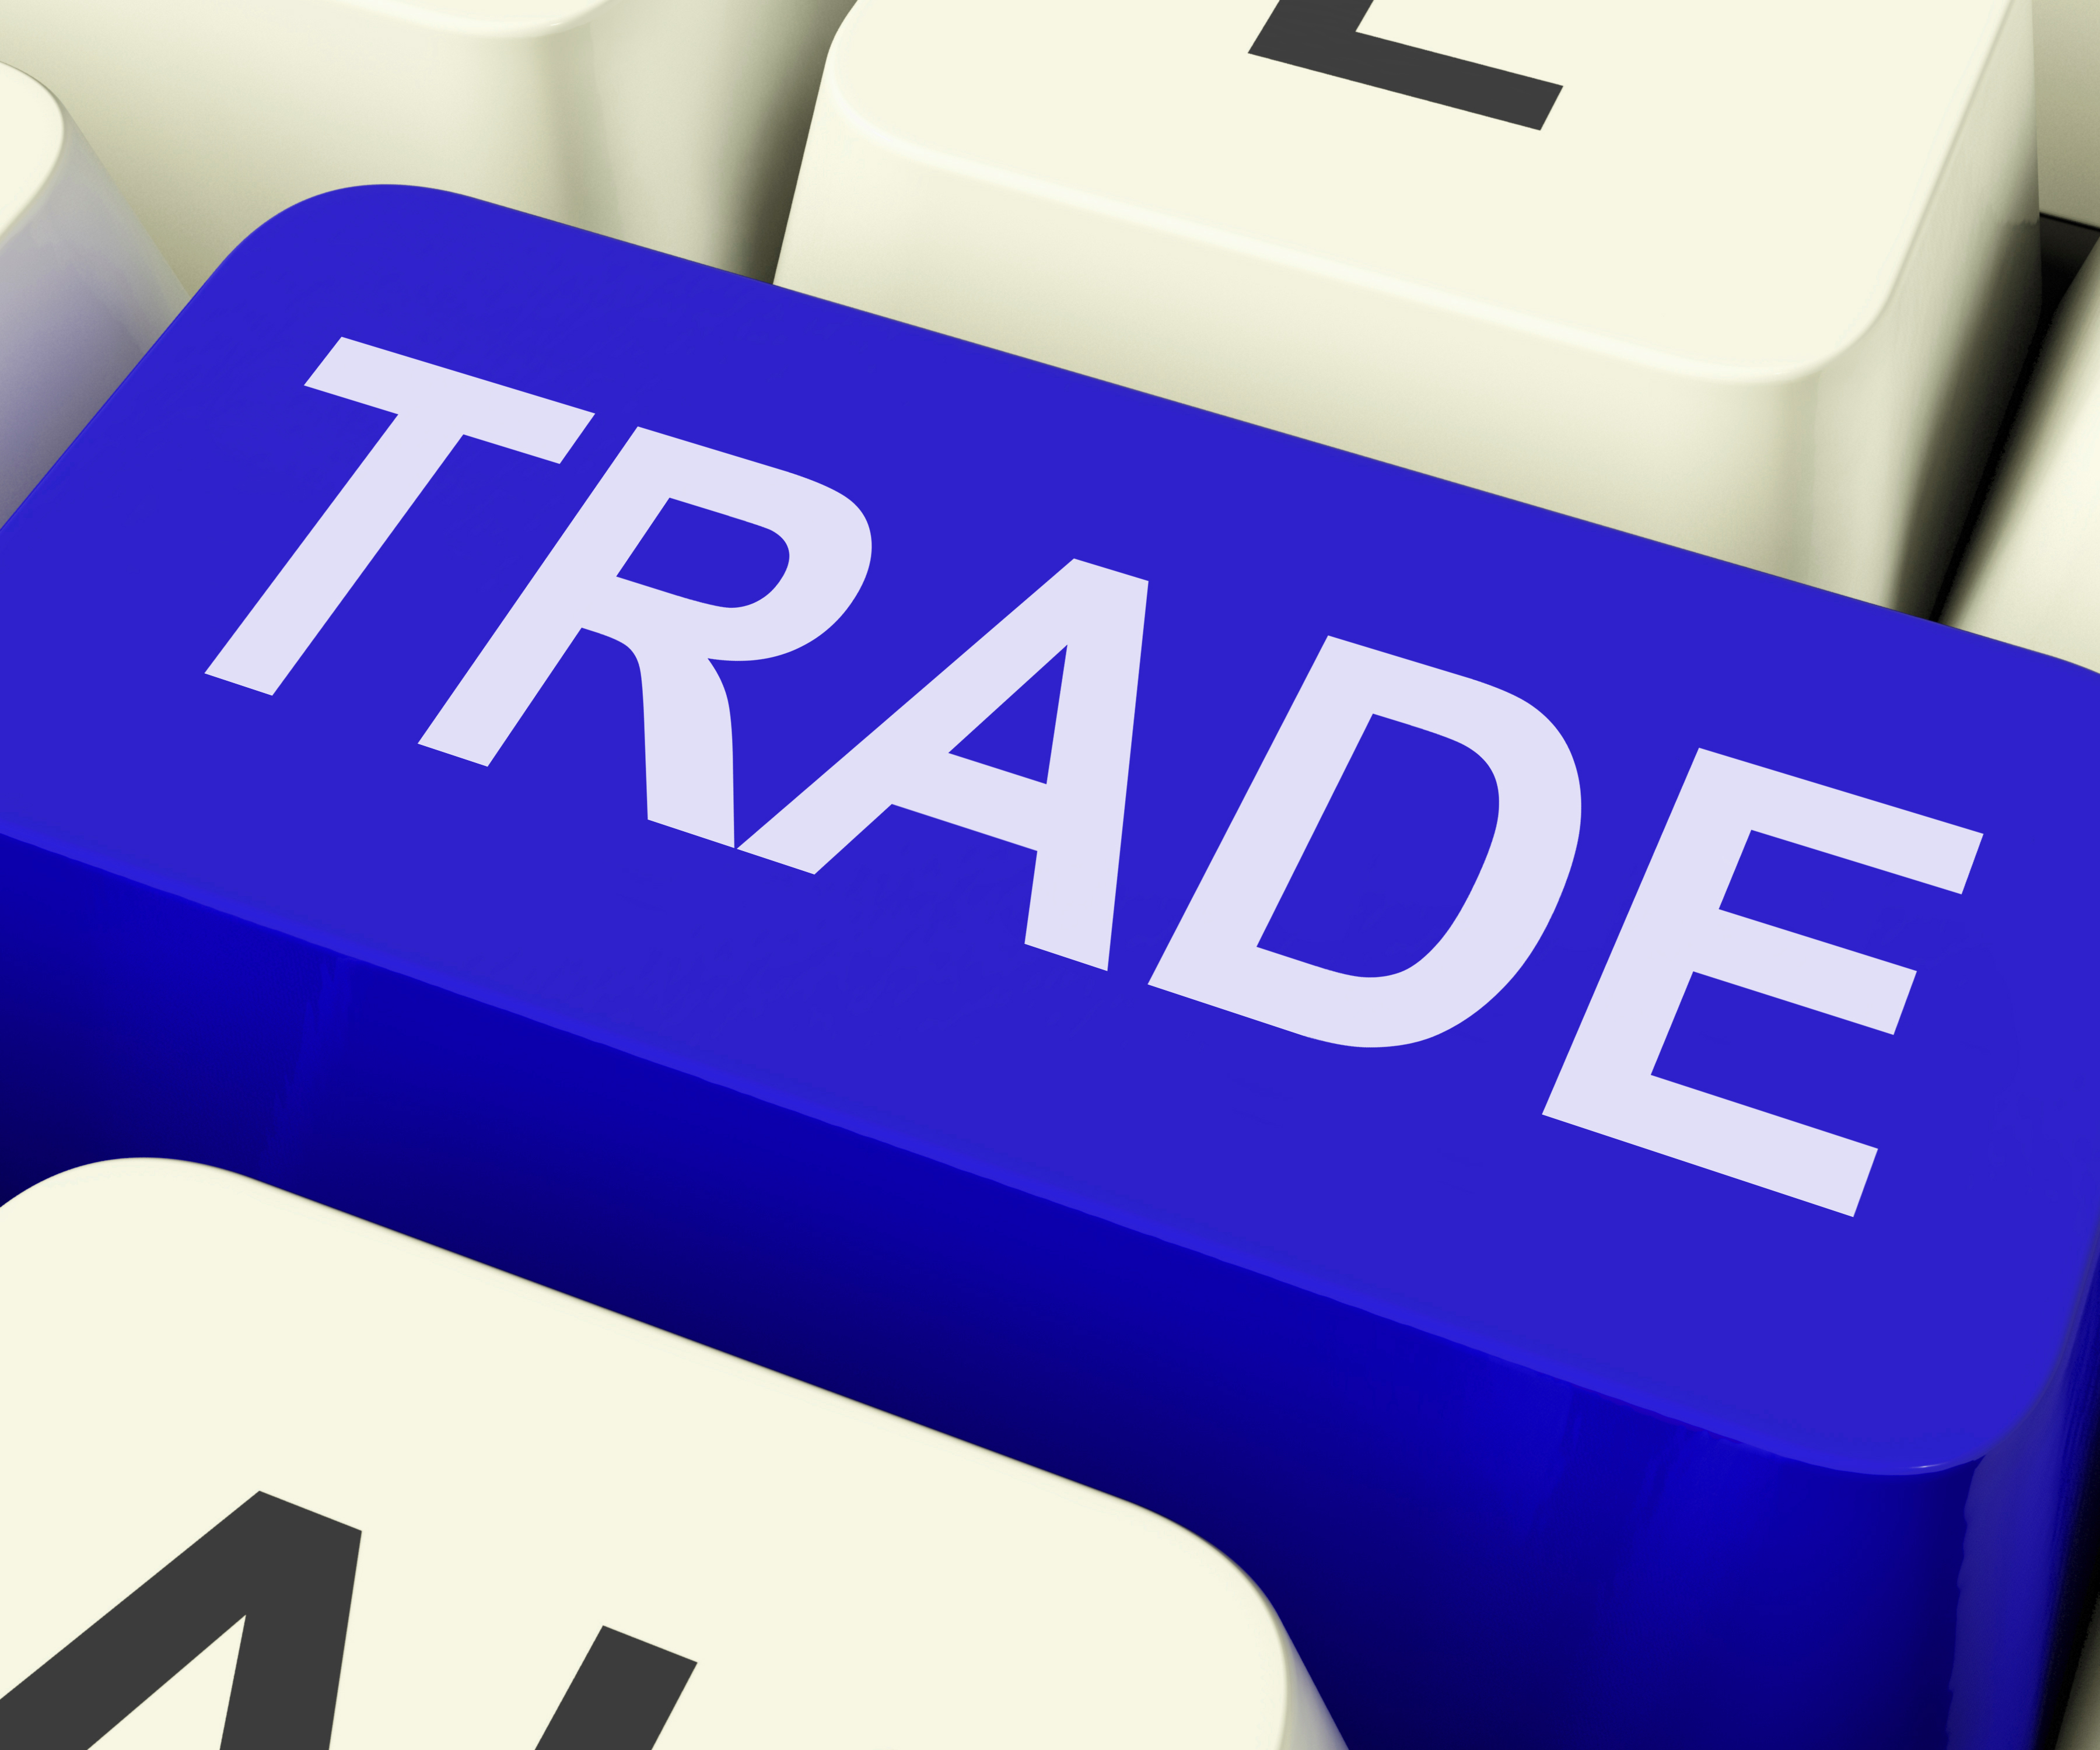 Trade | Definition of Trade by Merriam-Webster